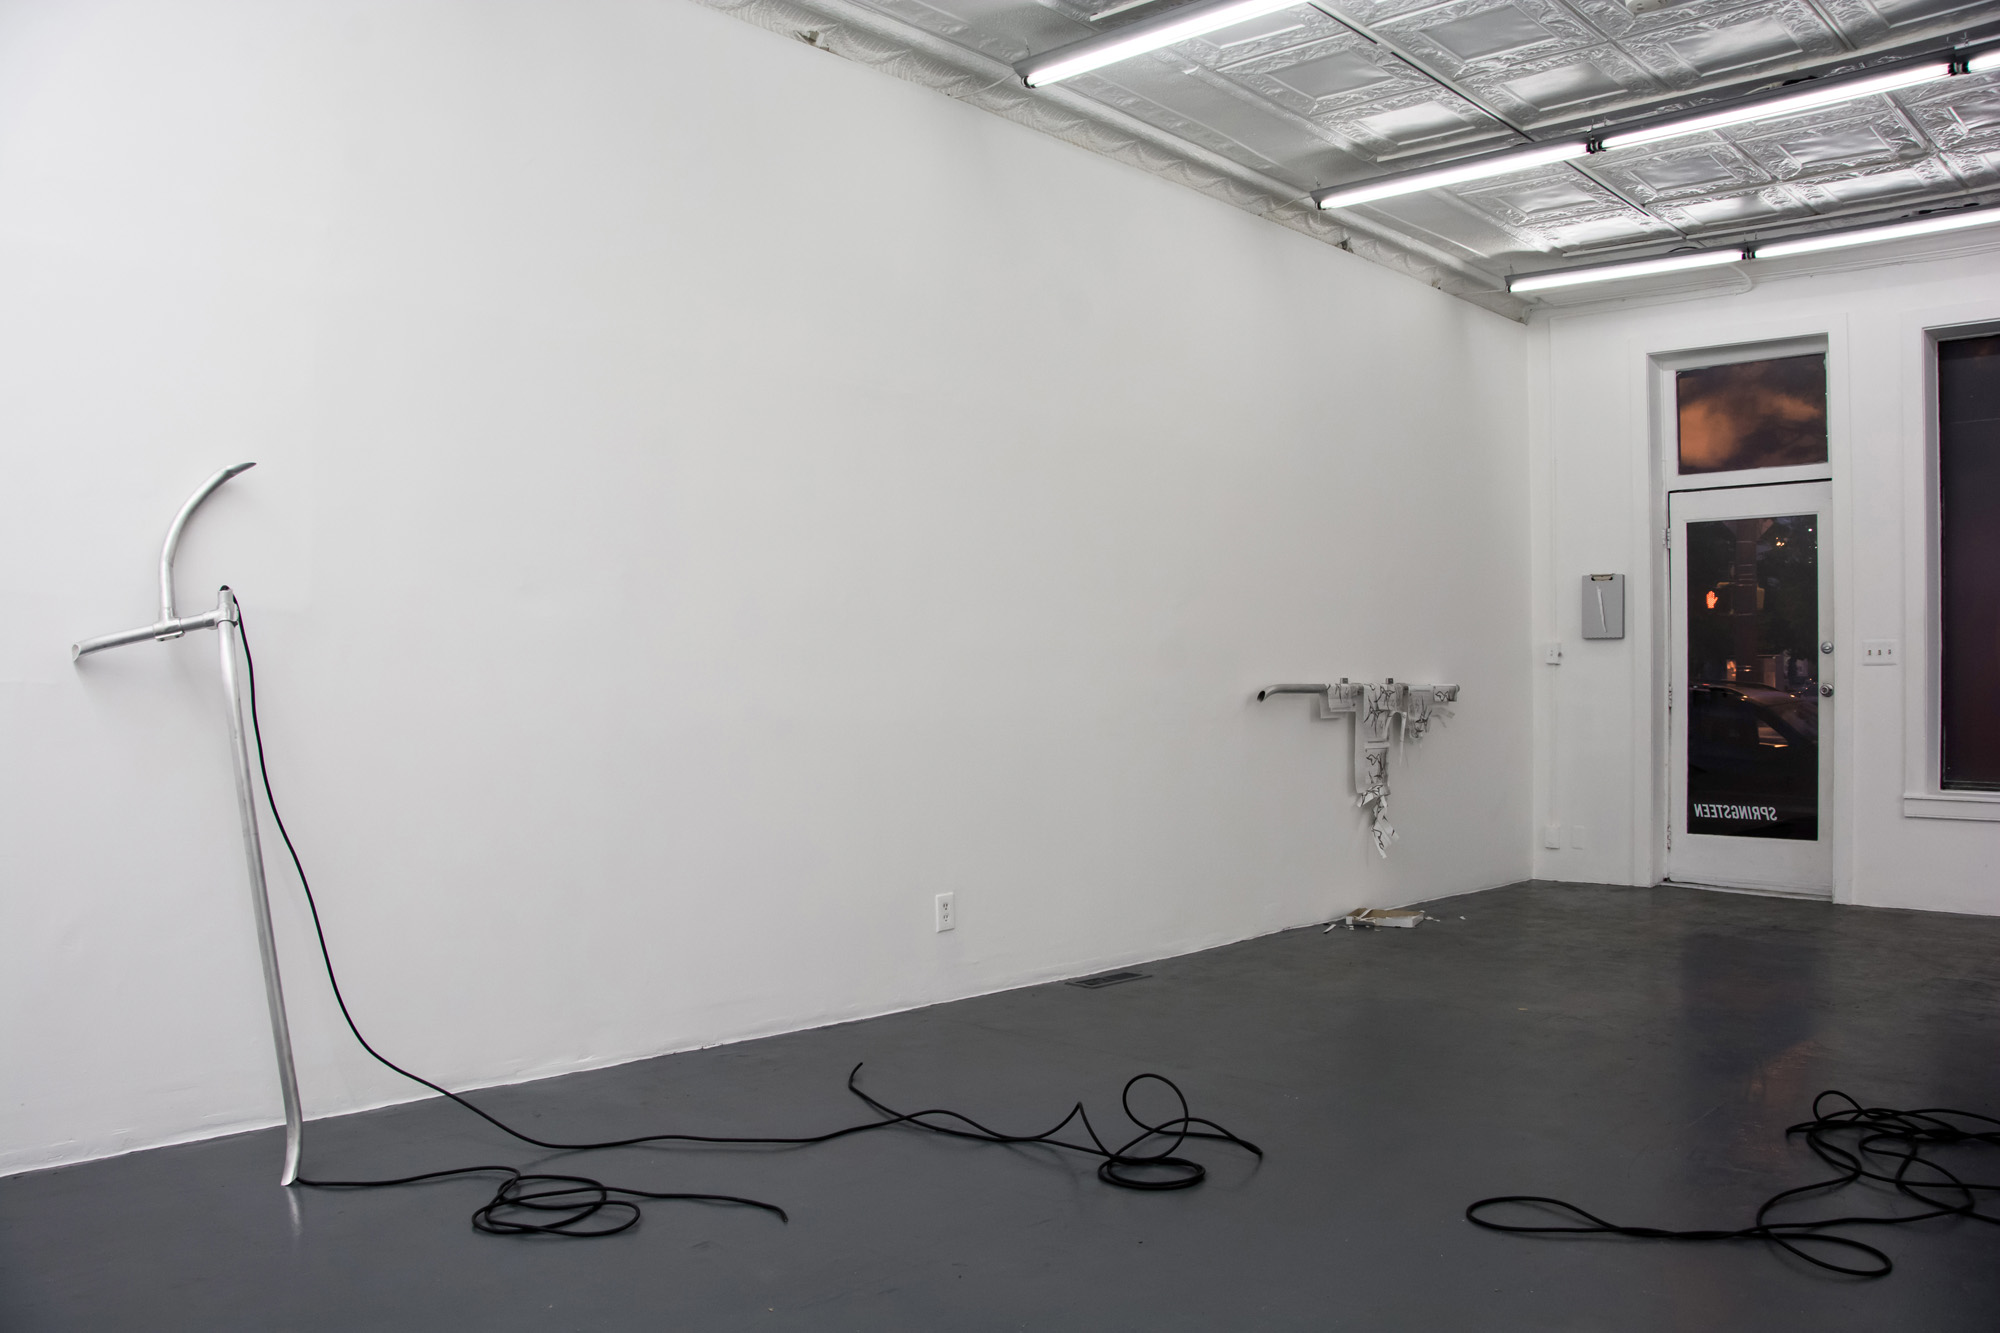 Laundered Fang (Gallery Main Room),  2016, Aluminum rail, hydraulic pressure, 6 AWG cable, T-8 Matrix(TM) guards